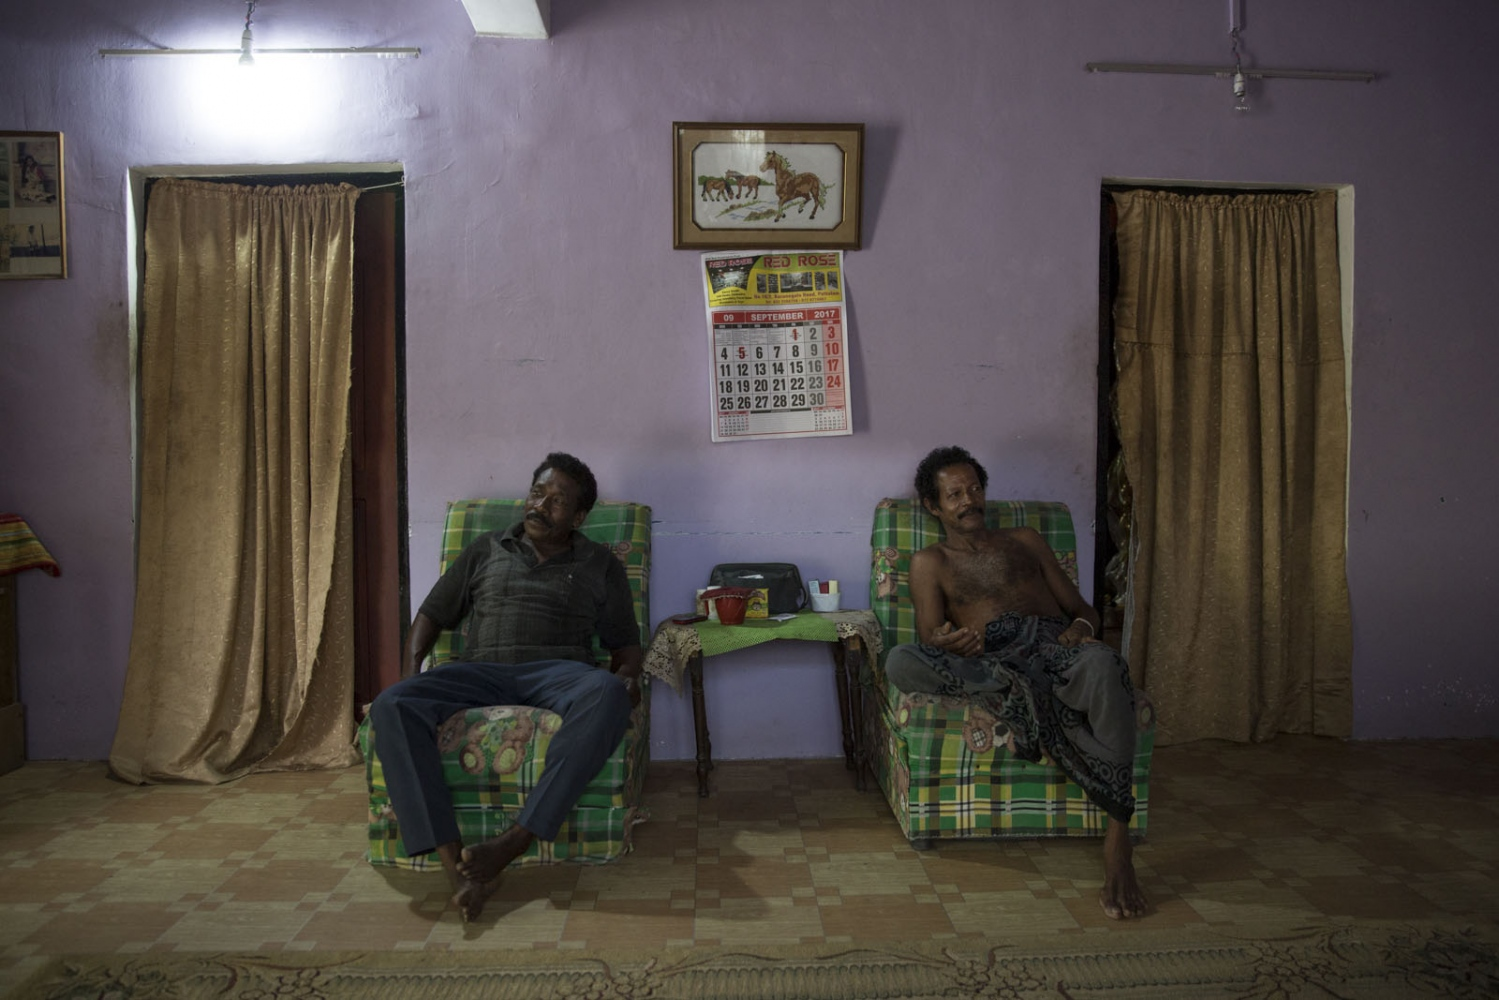 Solomon Linton (left) and Johnson (right) relax at Johnson's house in the Good Shed area of Puttalam town. Puttalam, Sri Lanka - September 2017